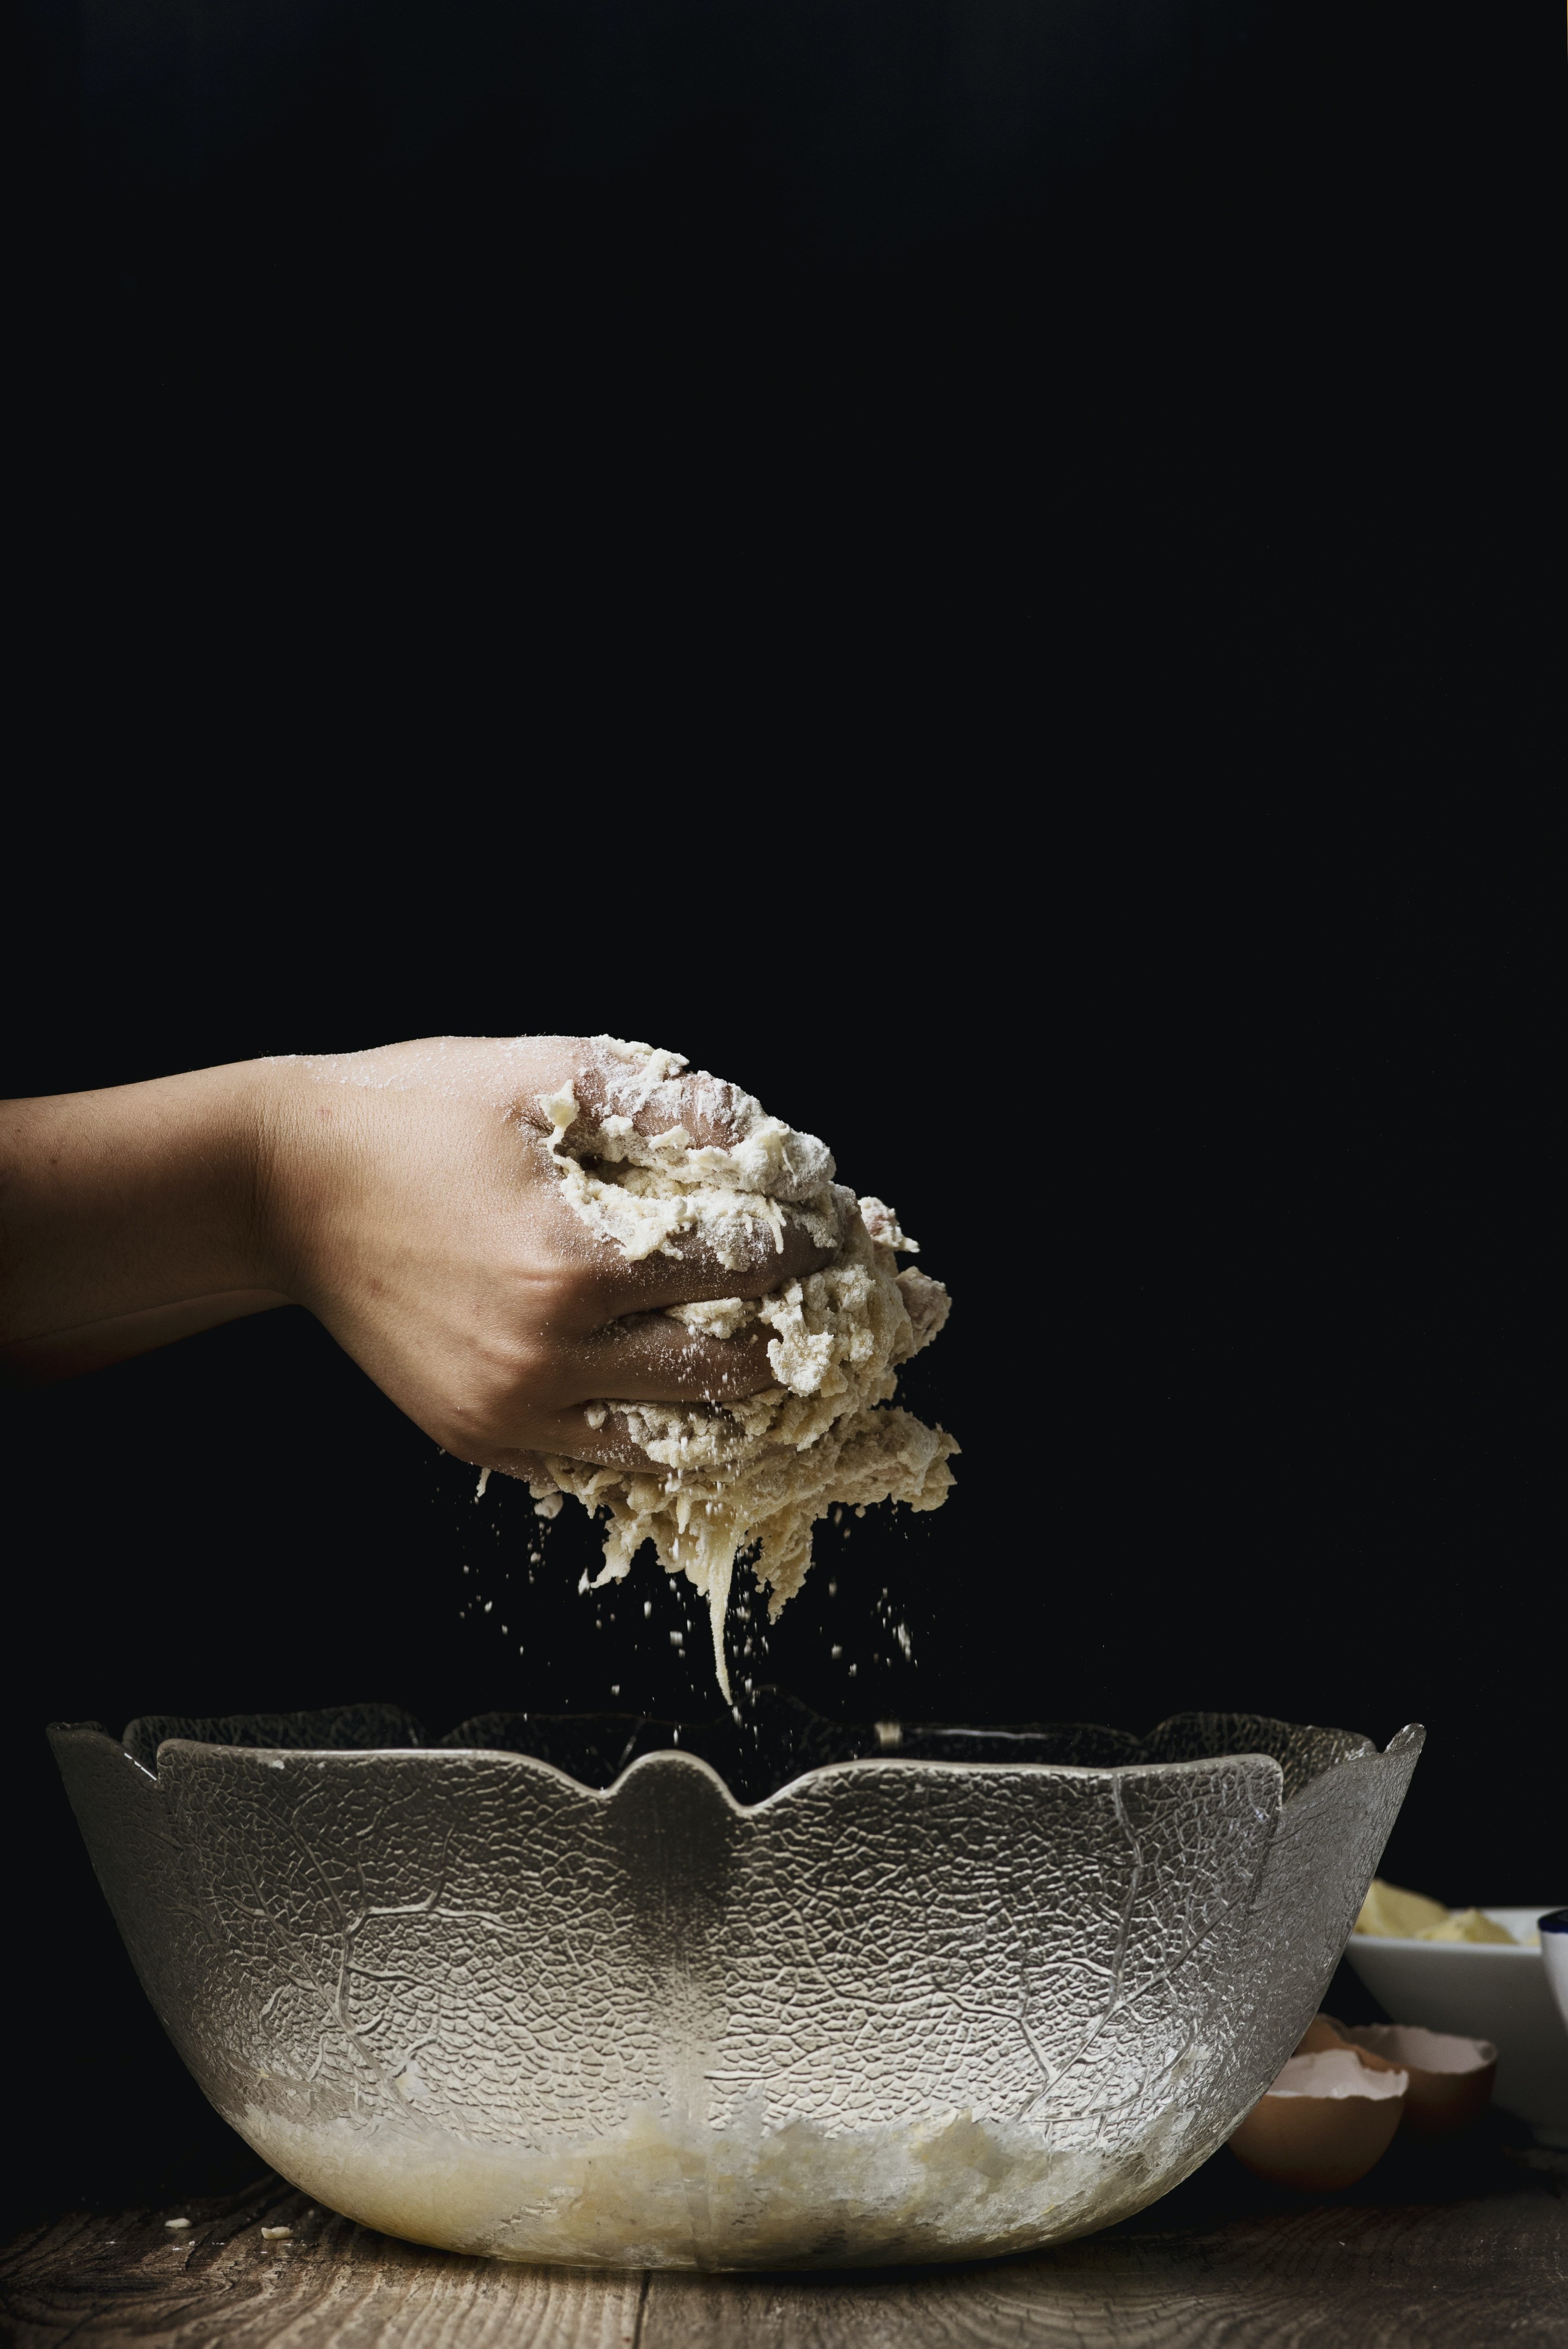 A person's hand kneading dough over a glass bowl